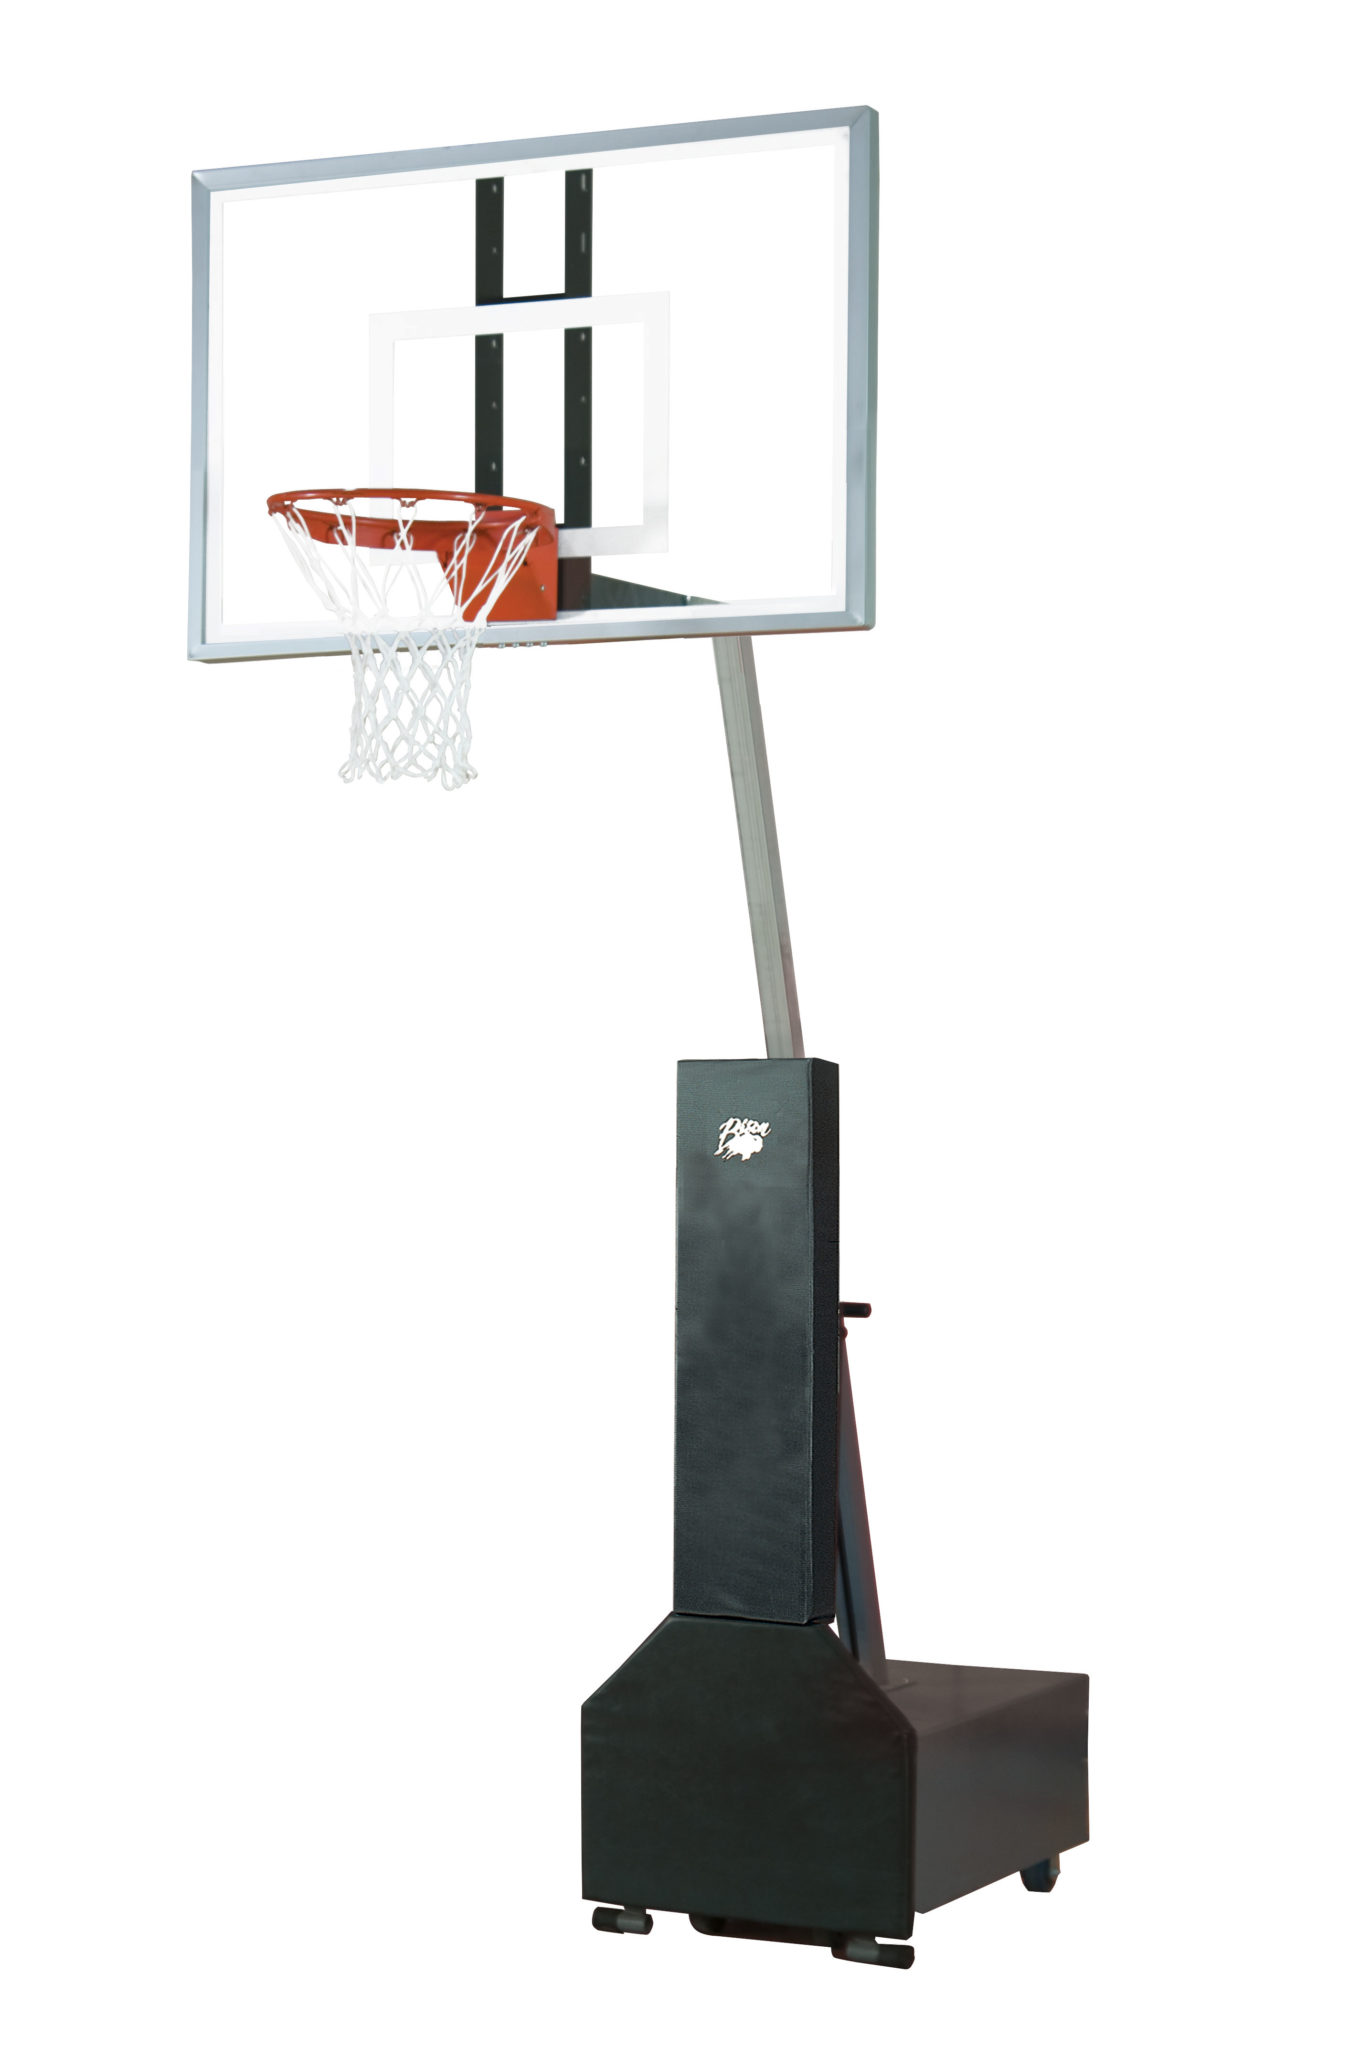 Club Court Glass Portable Adjustable Basketball System